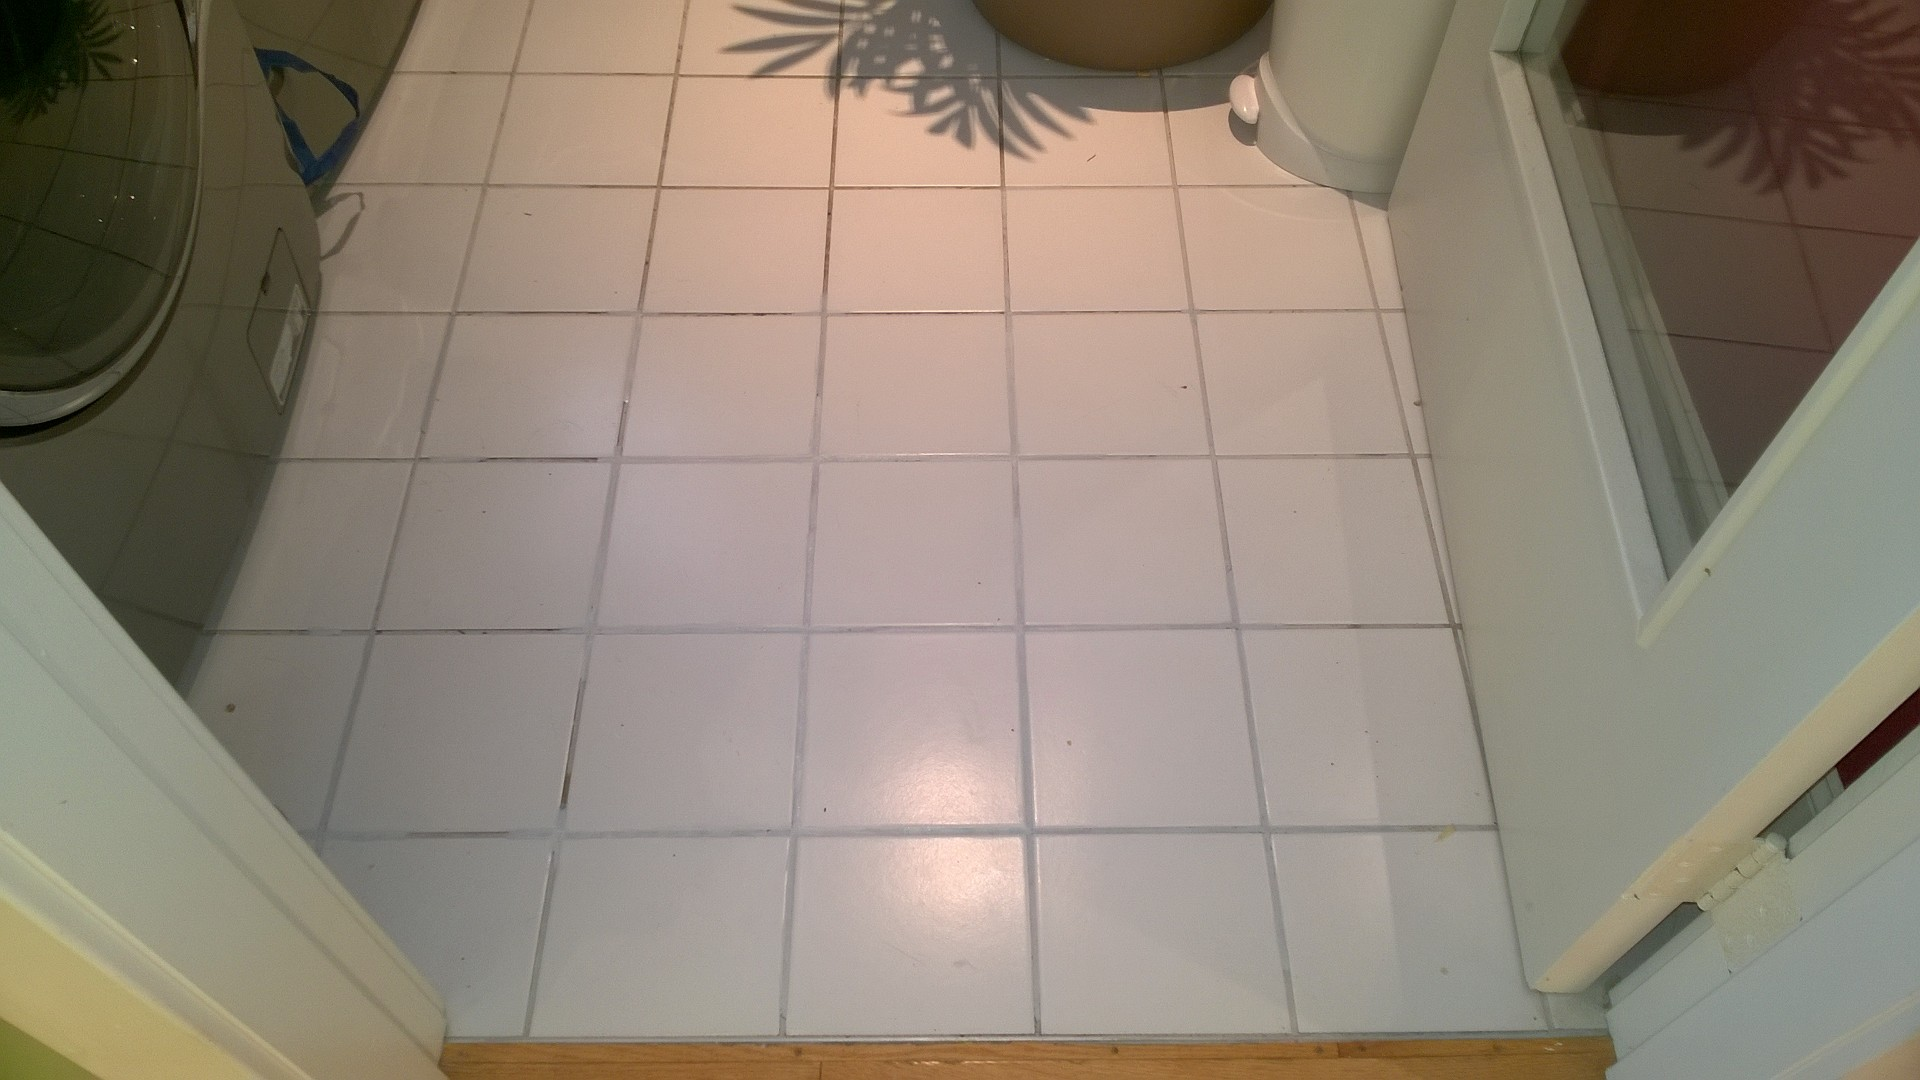 i replaced the cracked tile in the master bathroom using polyblend grout renew to re-hue the old dark grout in the laundry room